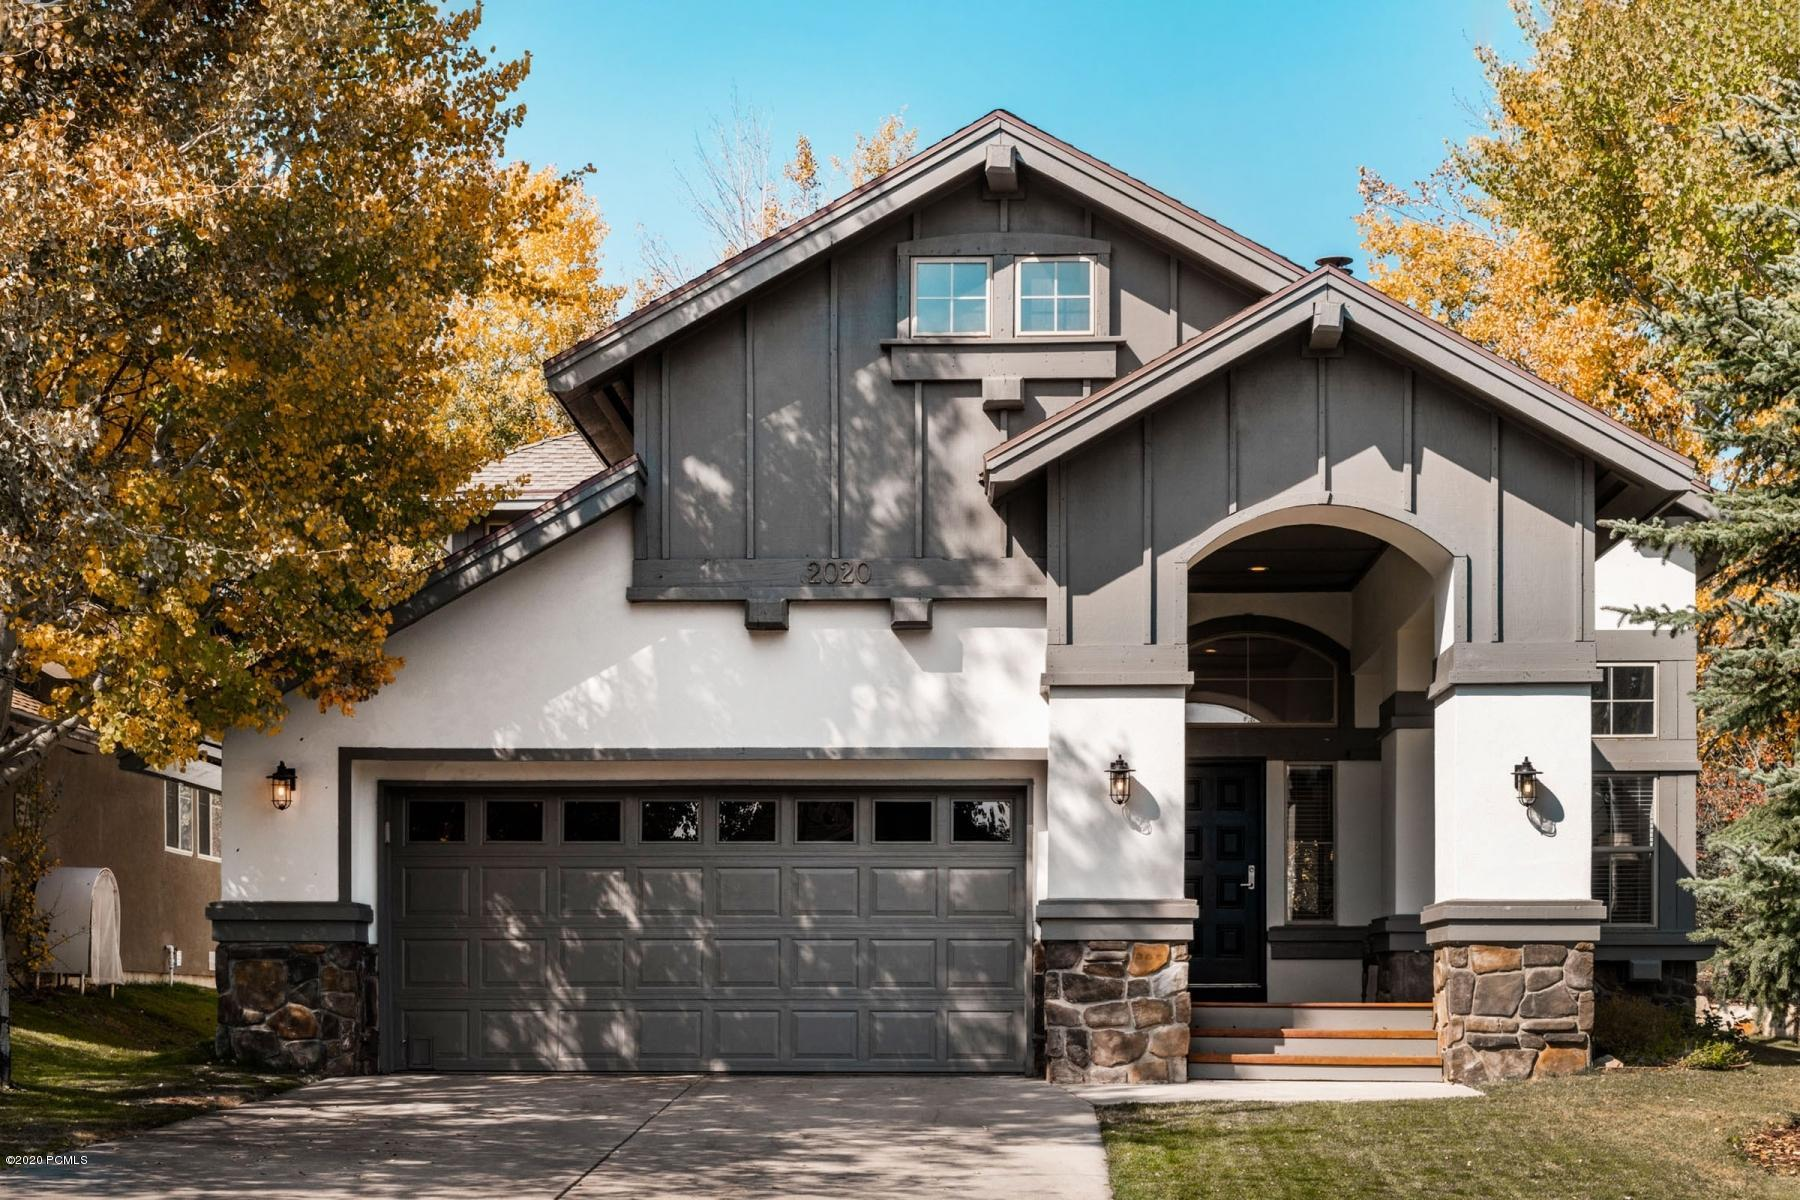 2020 Tommy Moe Court, Park City, Utah 84098, 4 Bedrooms Bedrooms, ,3 BathroomsBathrooms,Single Family,For Sale,Tommy Moe,12003966